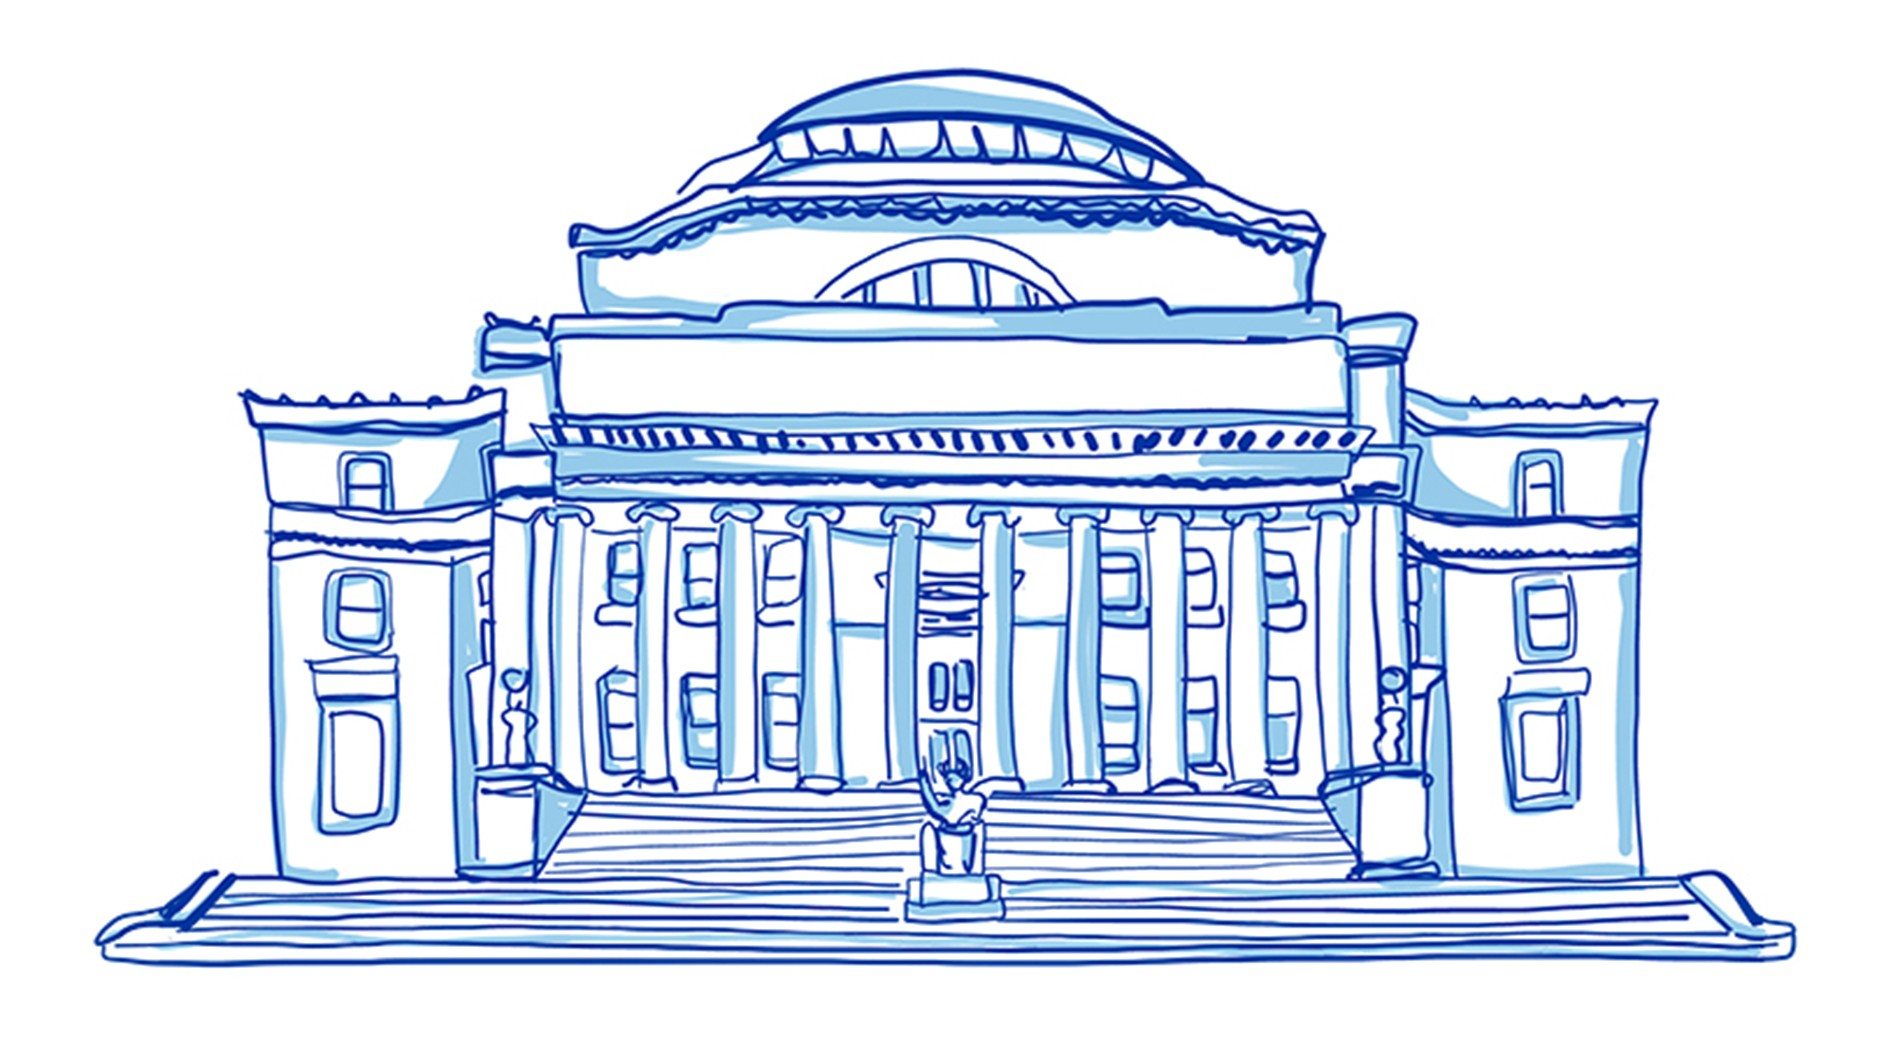 Blue and white illustration of Low Library, a classical building on Columbia's Morningside campus.